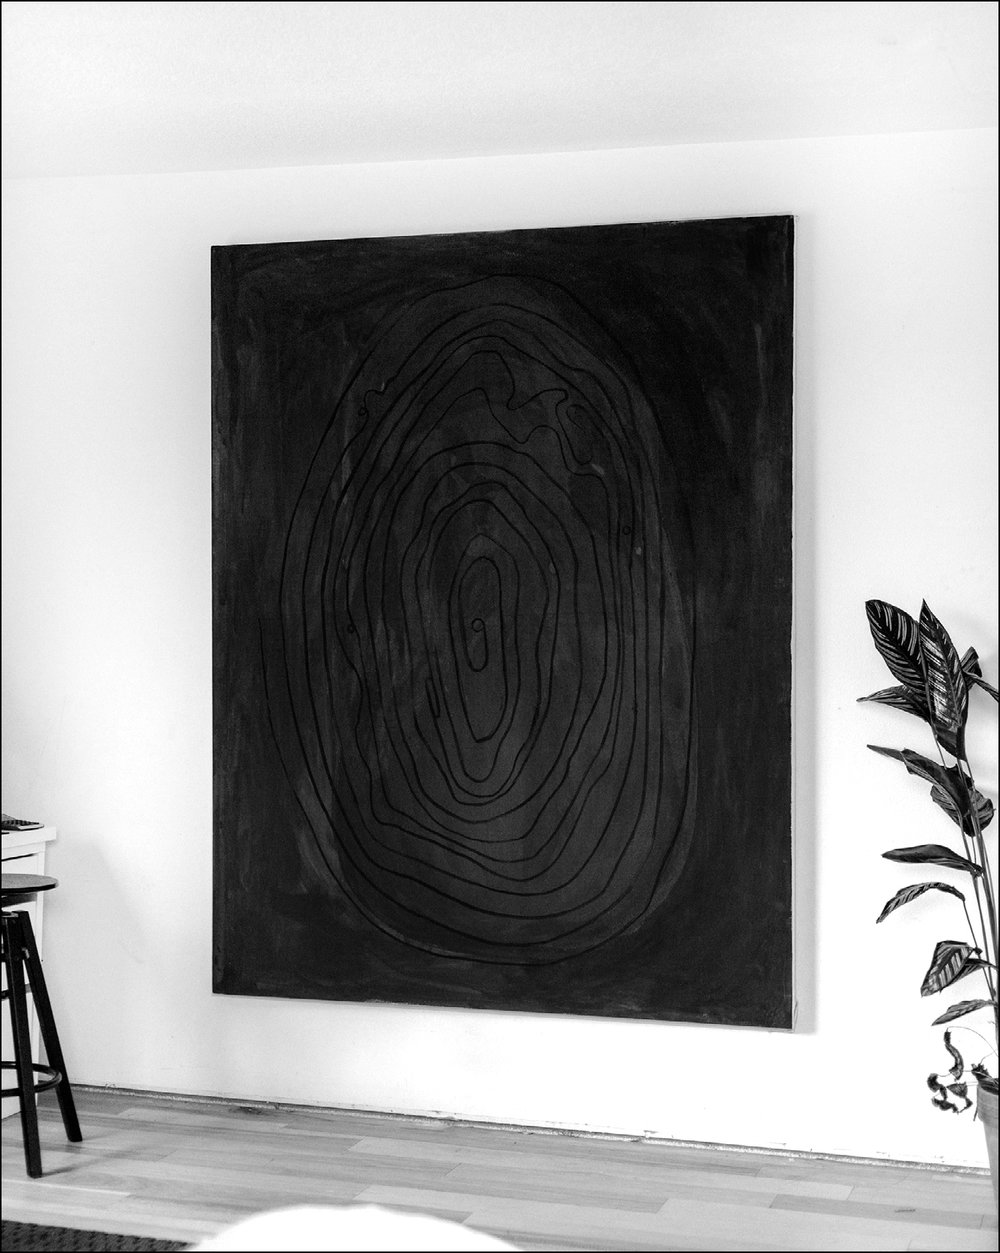 Void  - 2016 - Charcoal on Paint on Canvas - 60 x 78 Inches (152.4 x 198.1cm) — $7,200 USD